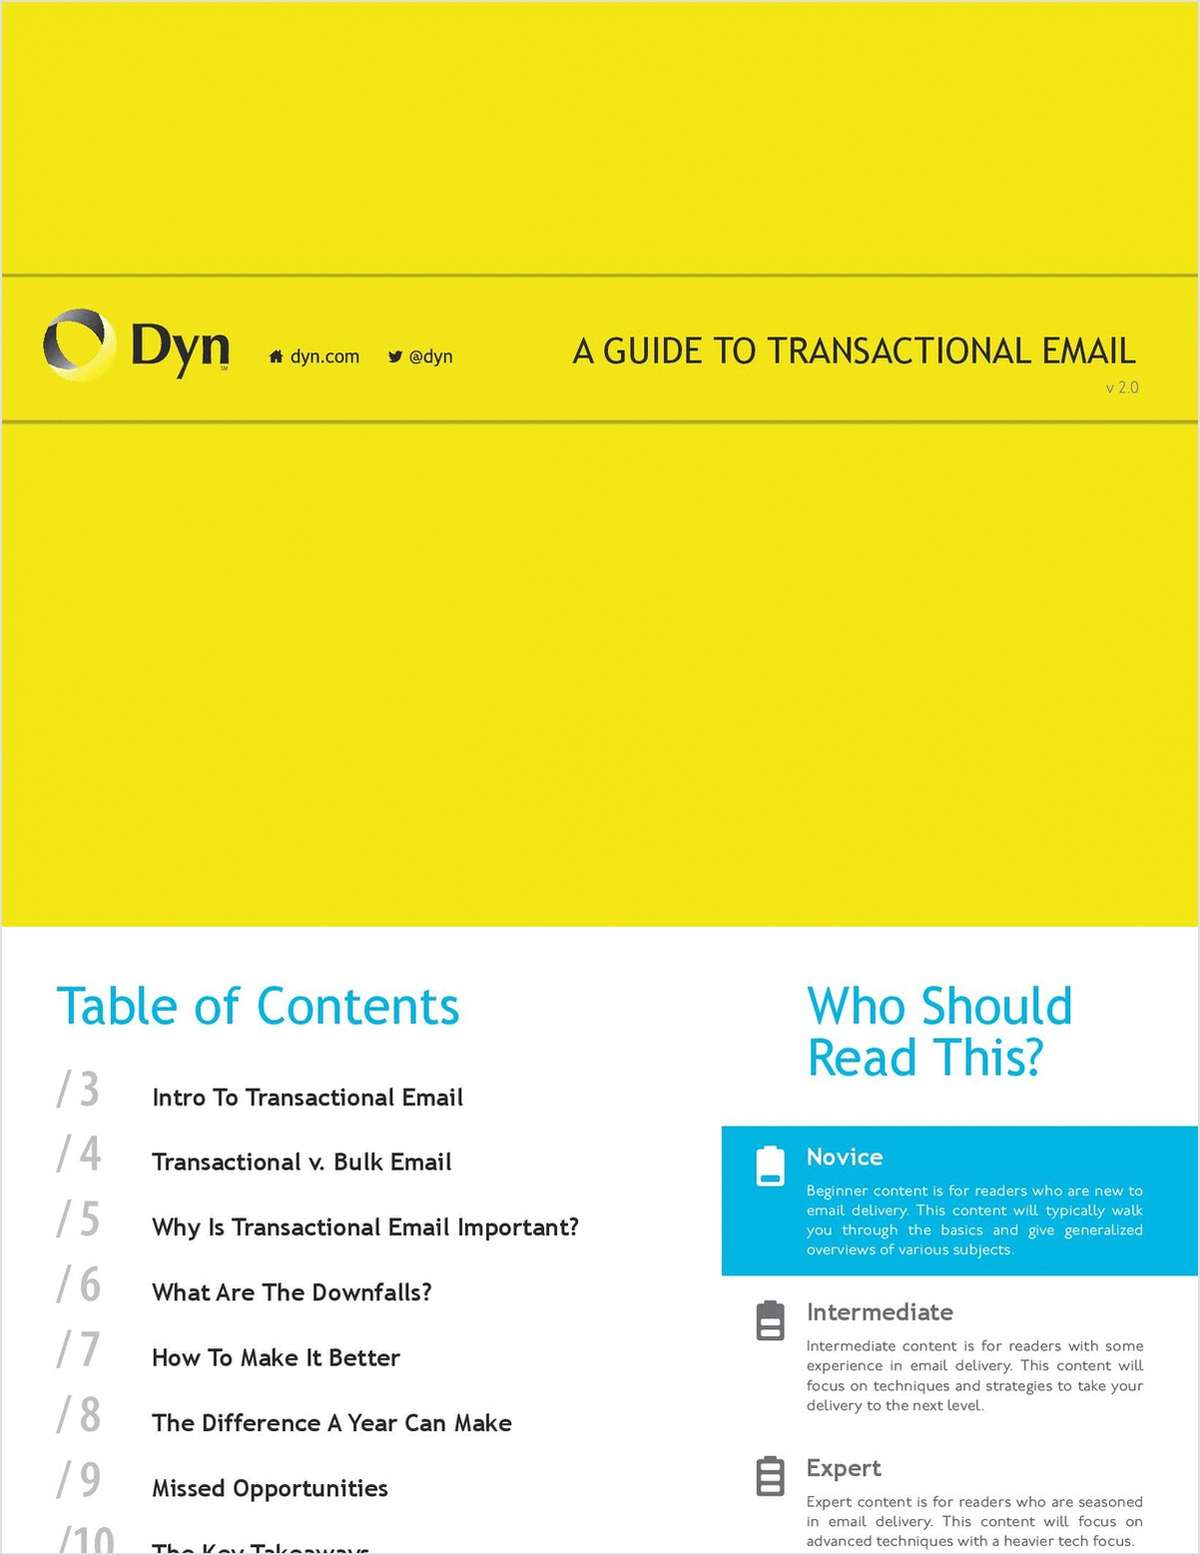 A Guide to Transactional Email